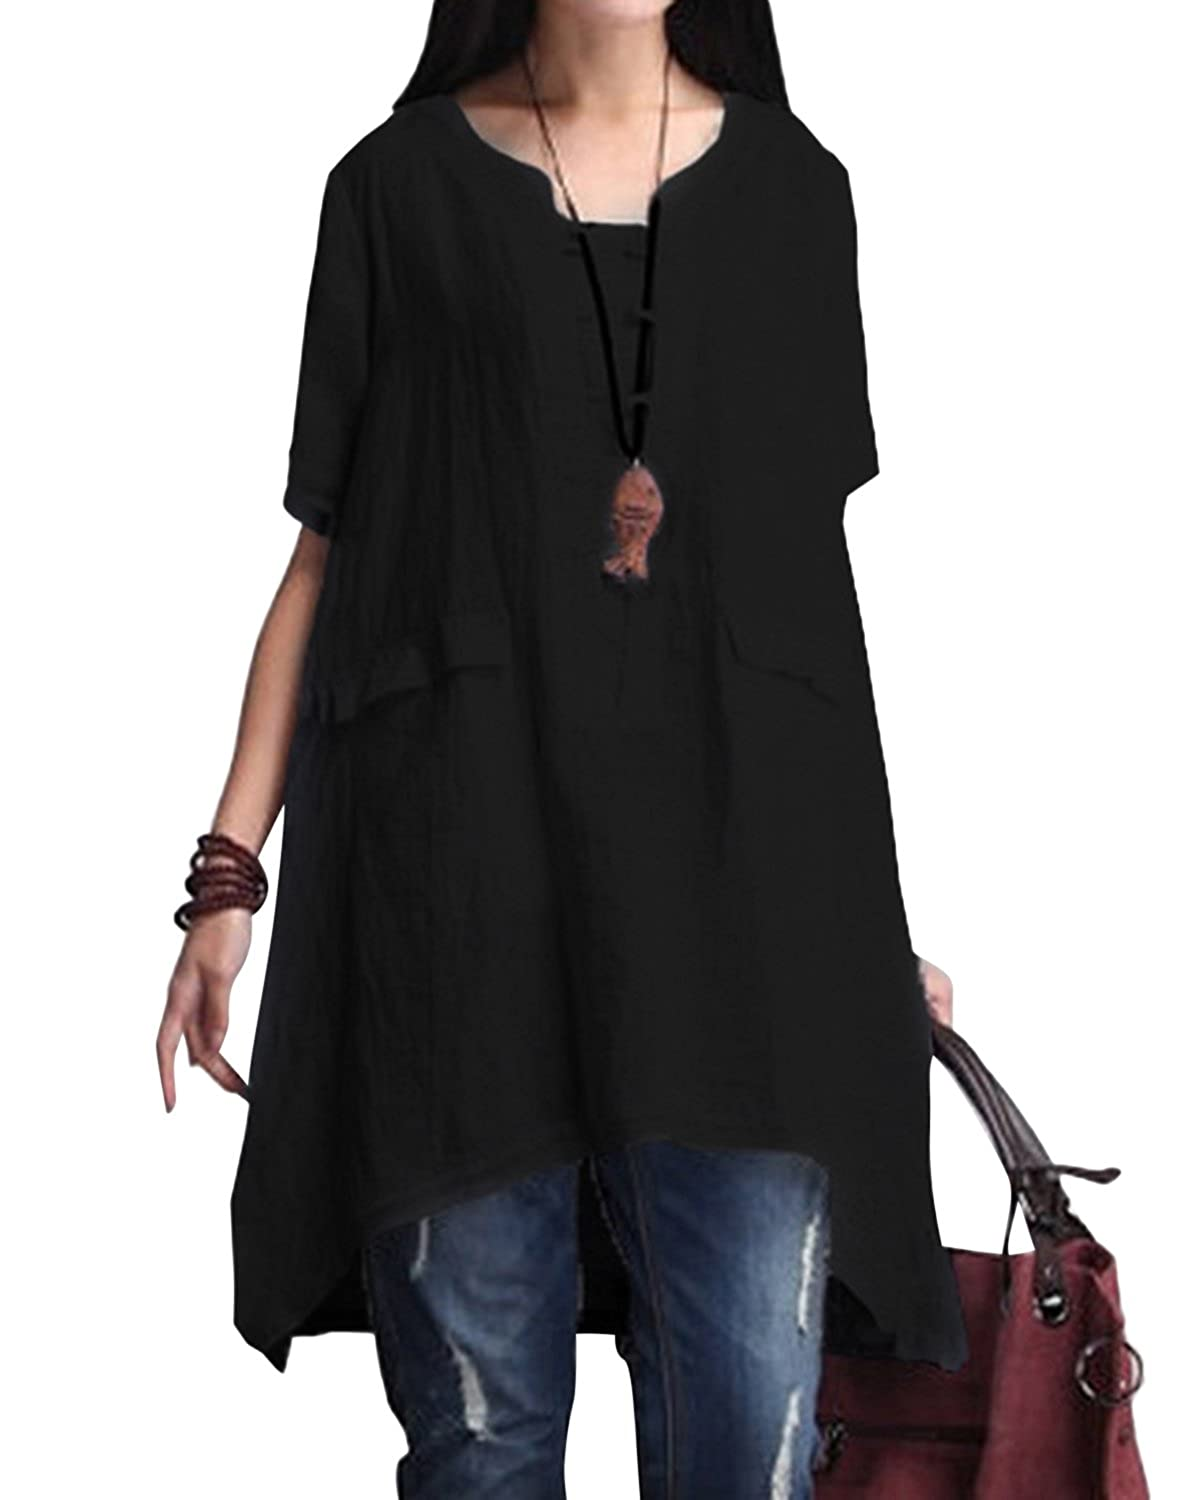 42b6ad00dbe 【Material】: Cotton & Linen, soft and comfortable to wear. 【Features】: This  tunic is fake v neck design, short sleeve, hi-low hem, split side,loose fit.